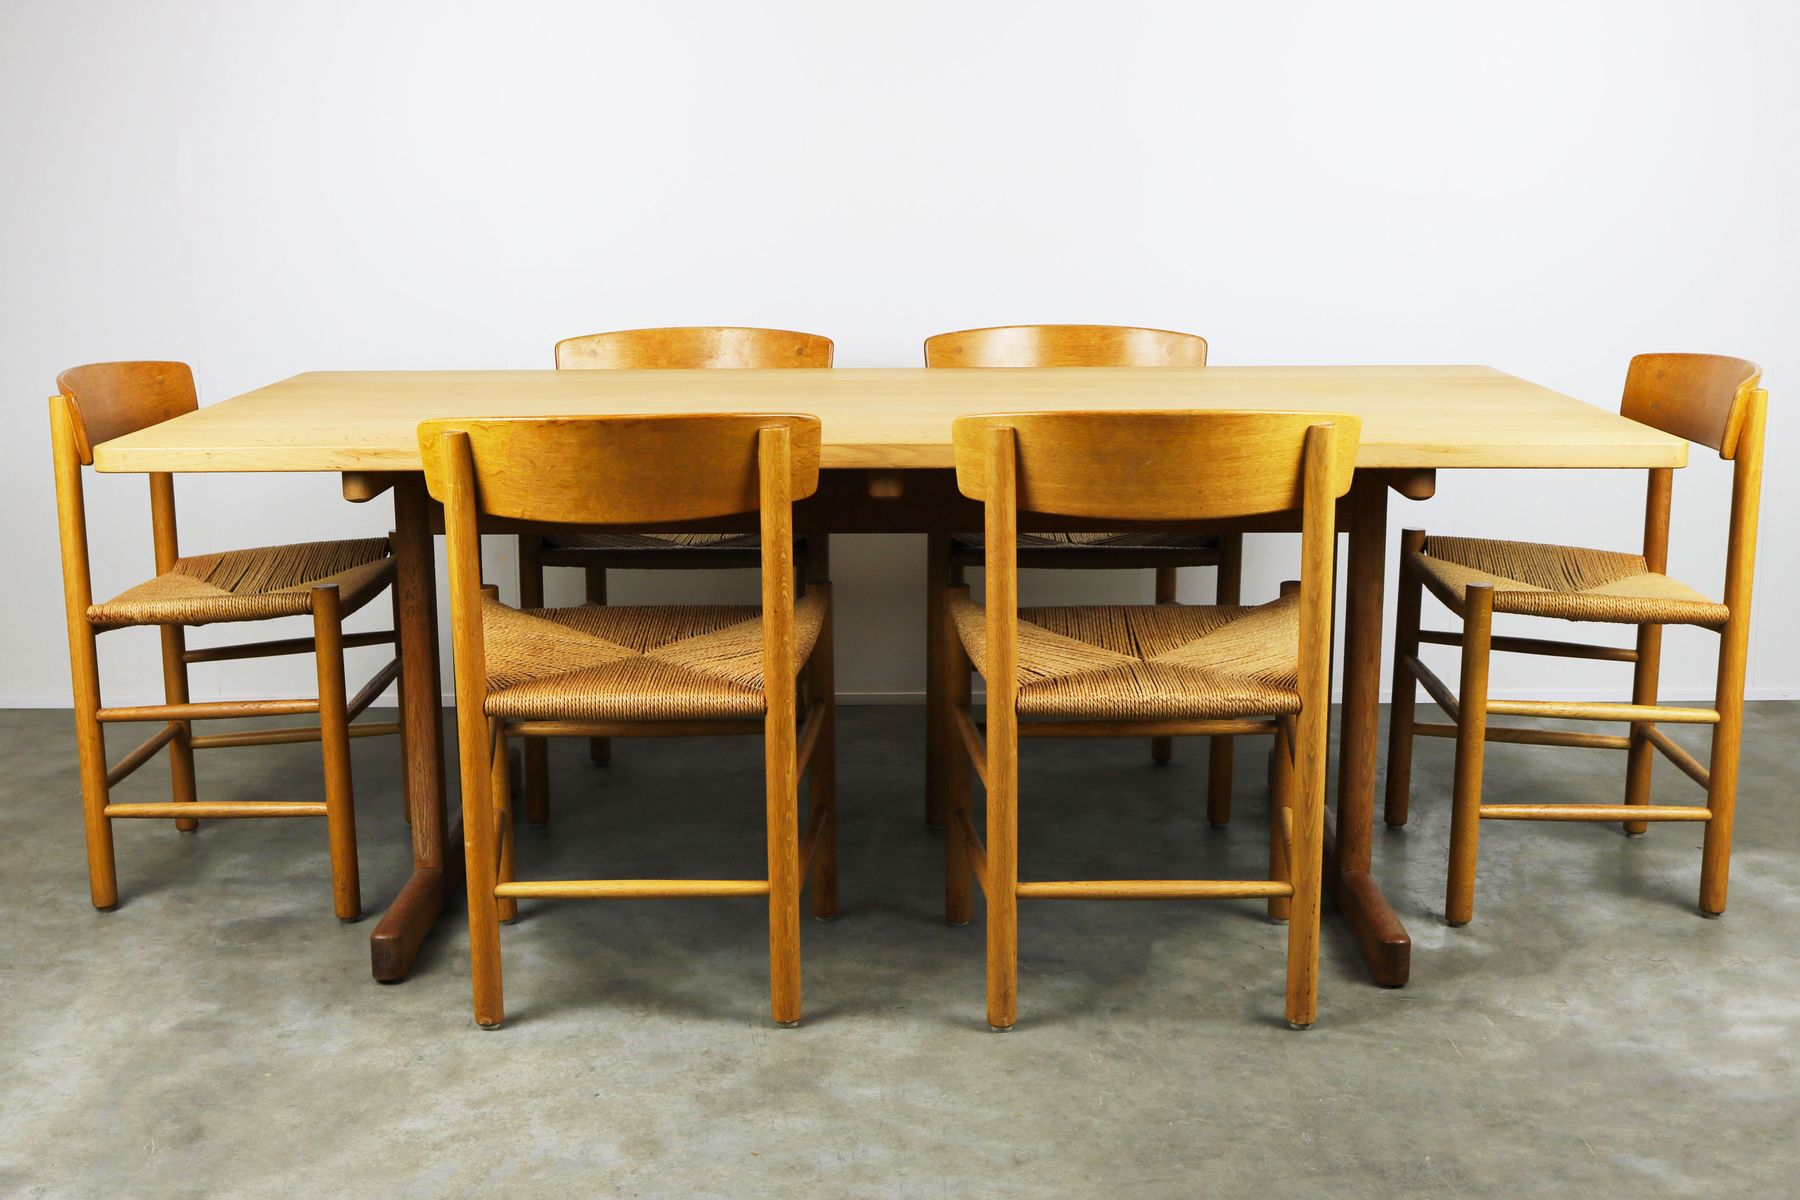 Danish Shaker Dining Room Set J39 Chairs U0026 6286 Table By Børge Mogensen For  Fredericia Stolenfabrik, 1950s For Sale At Pamono